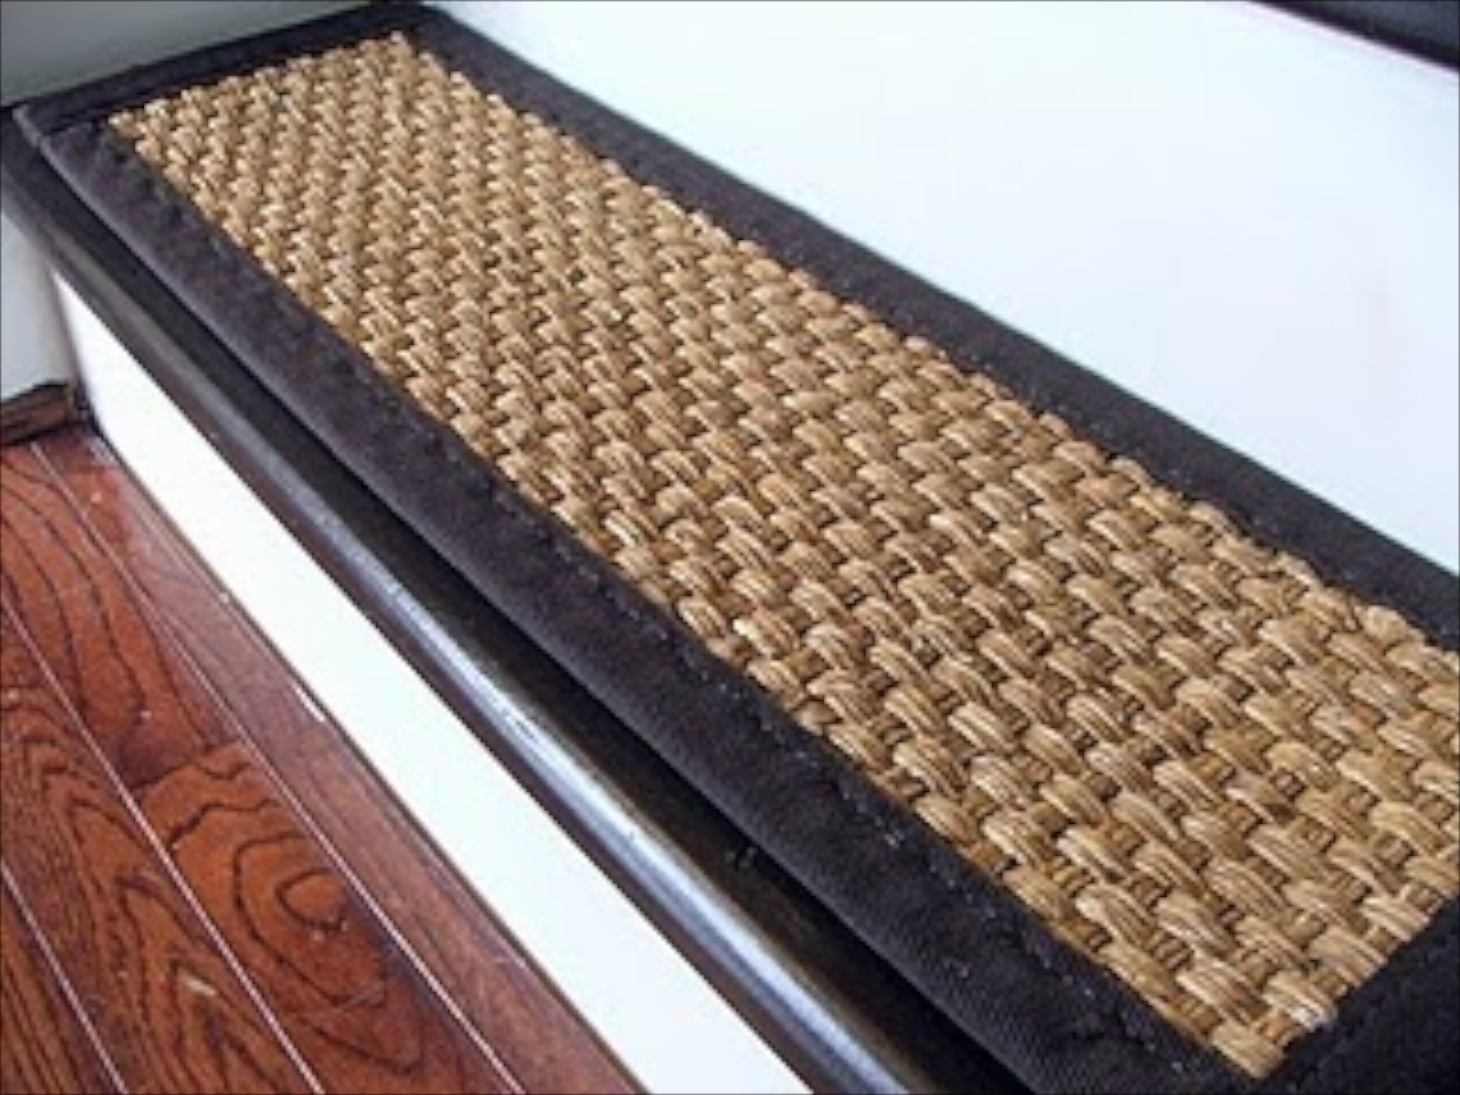 Decor Beautiful Stair Tread Covers Make An Elegant Addition To Throughout Rectangular Stair Treads (Image 5 of 15)